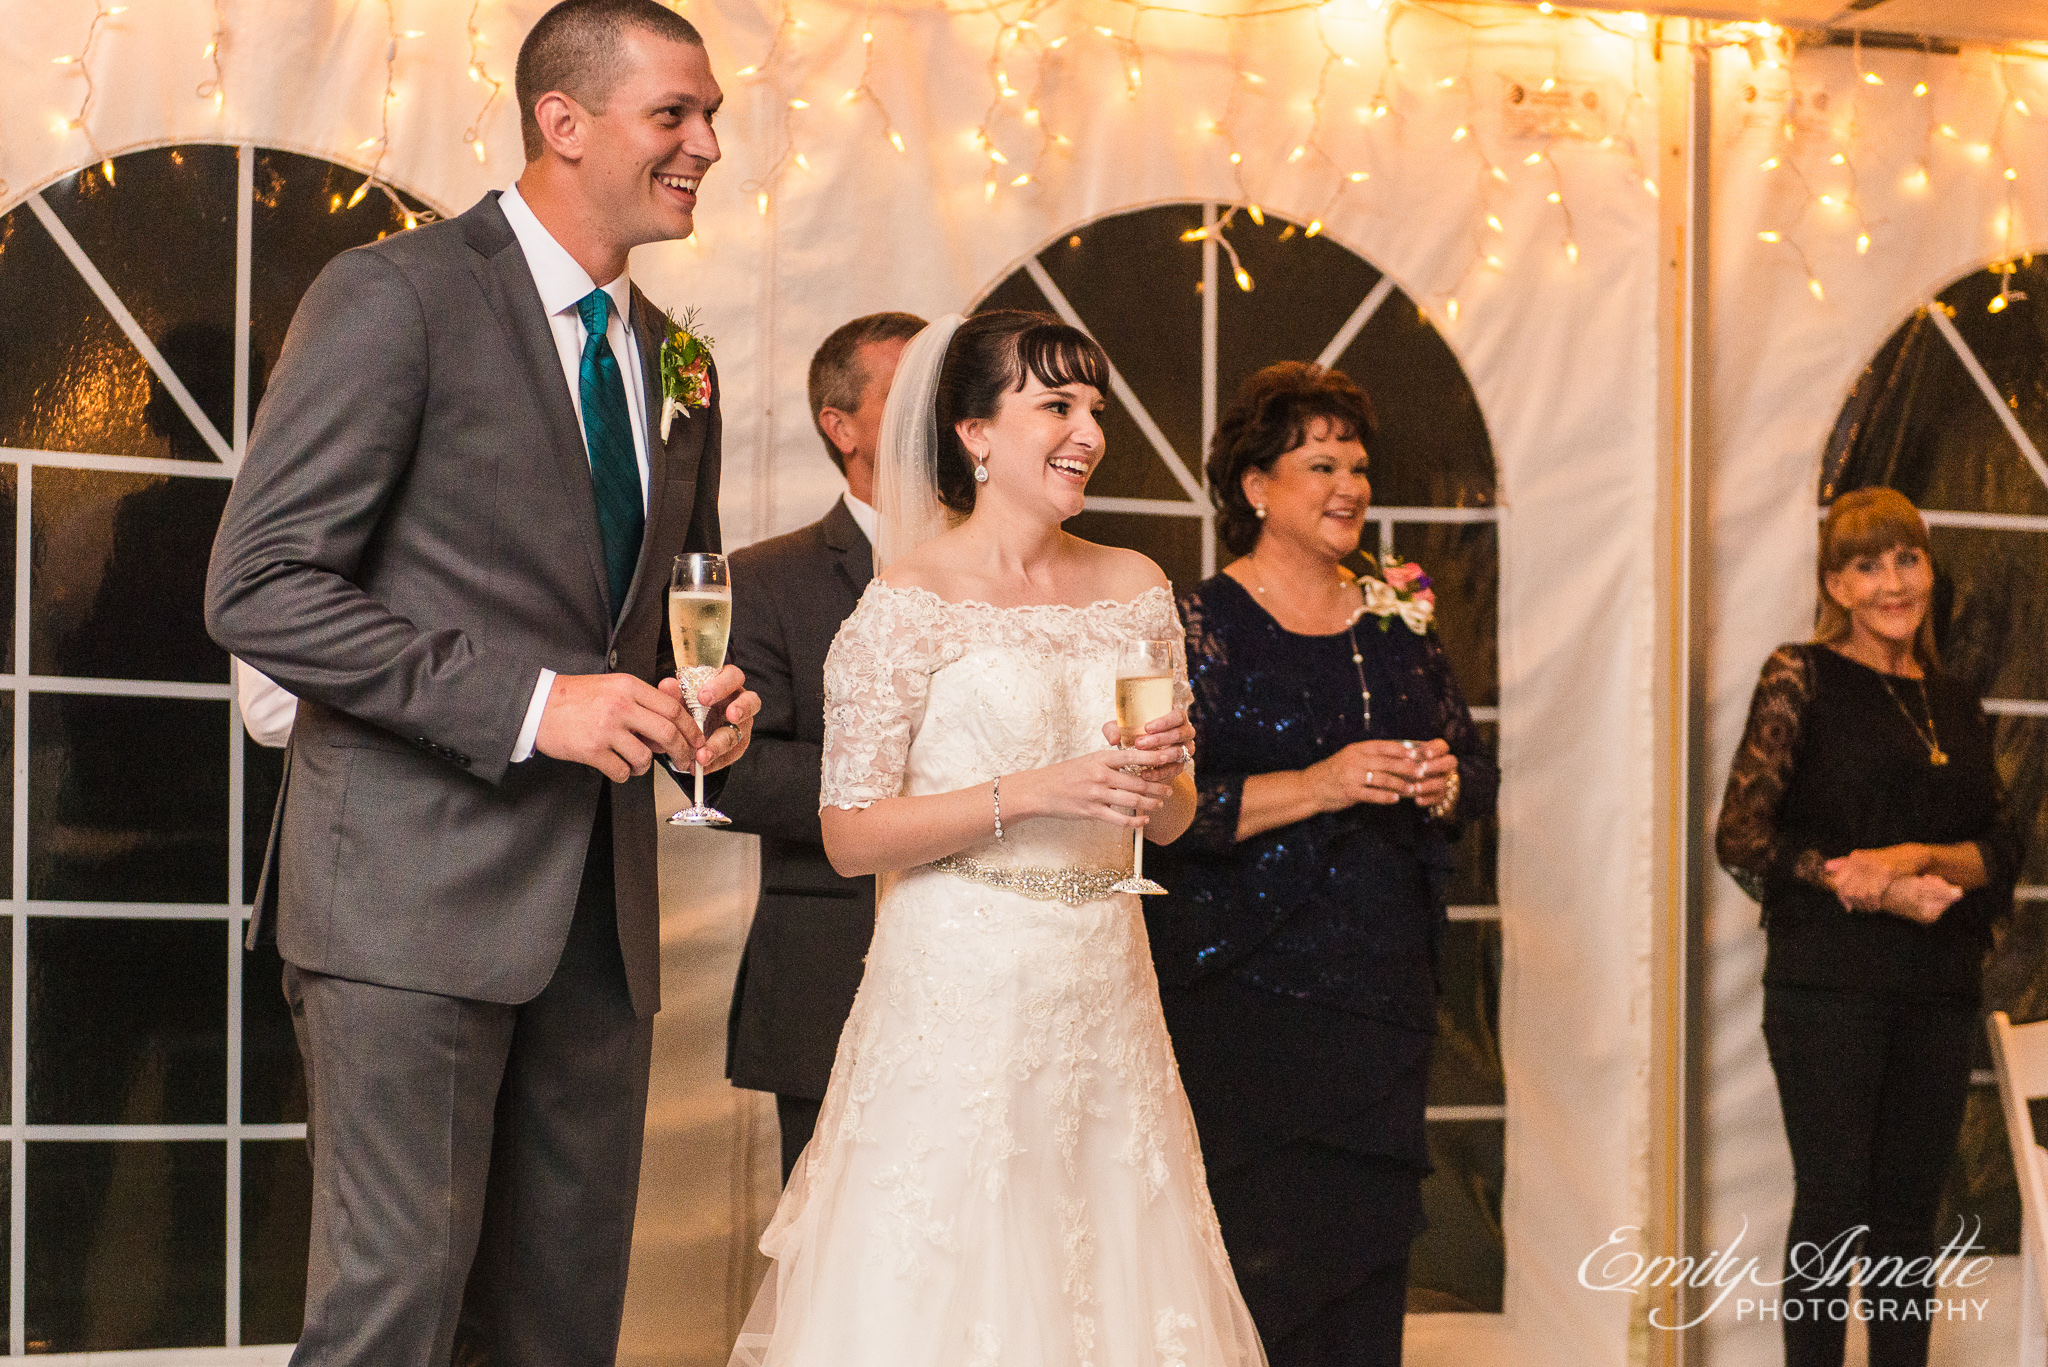 A bride and groom laugh during the toasts of a country wedding reception at Amber Grove near Richmond, Virginia